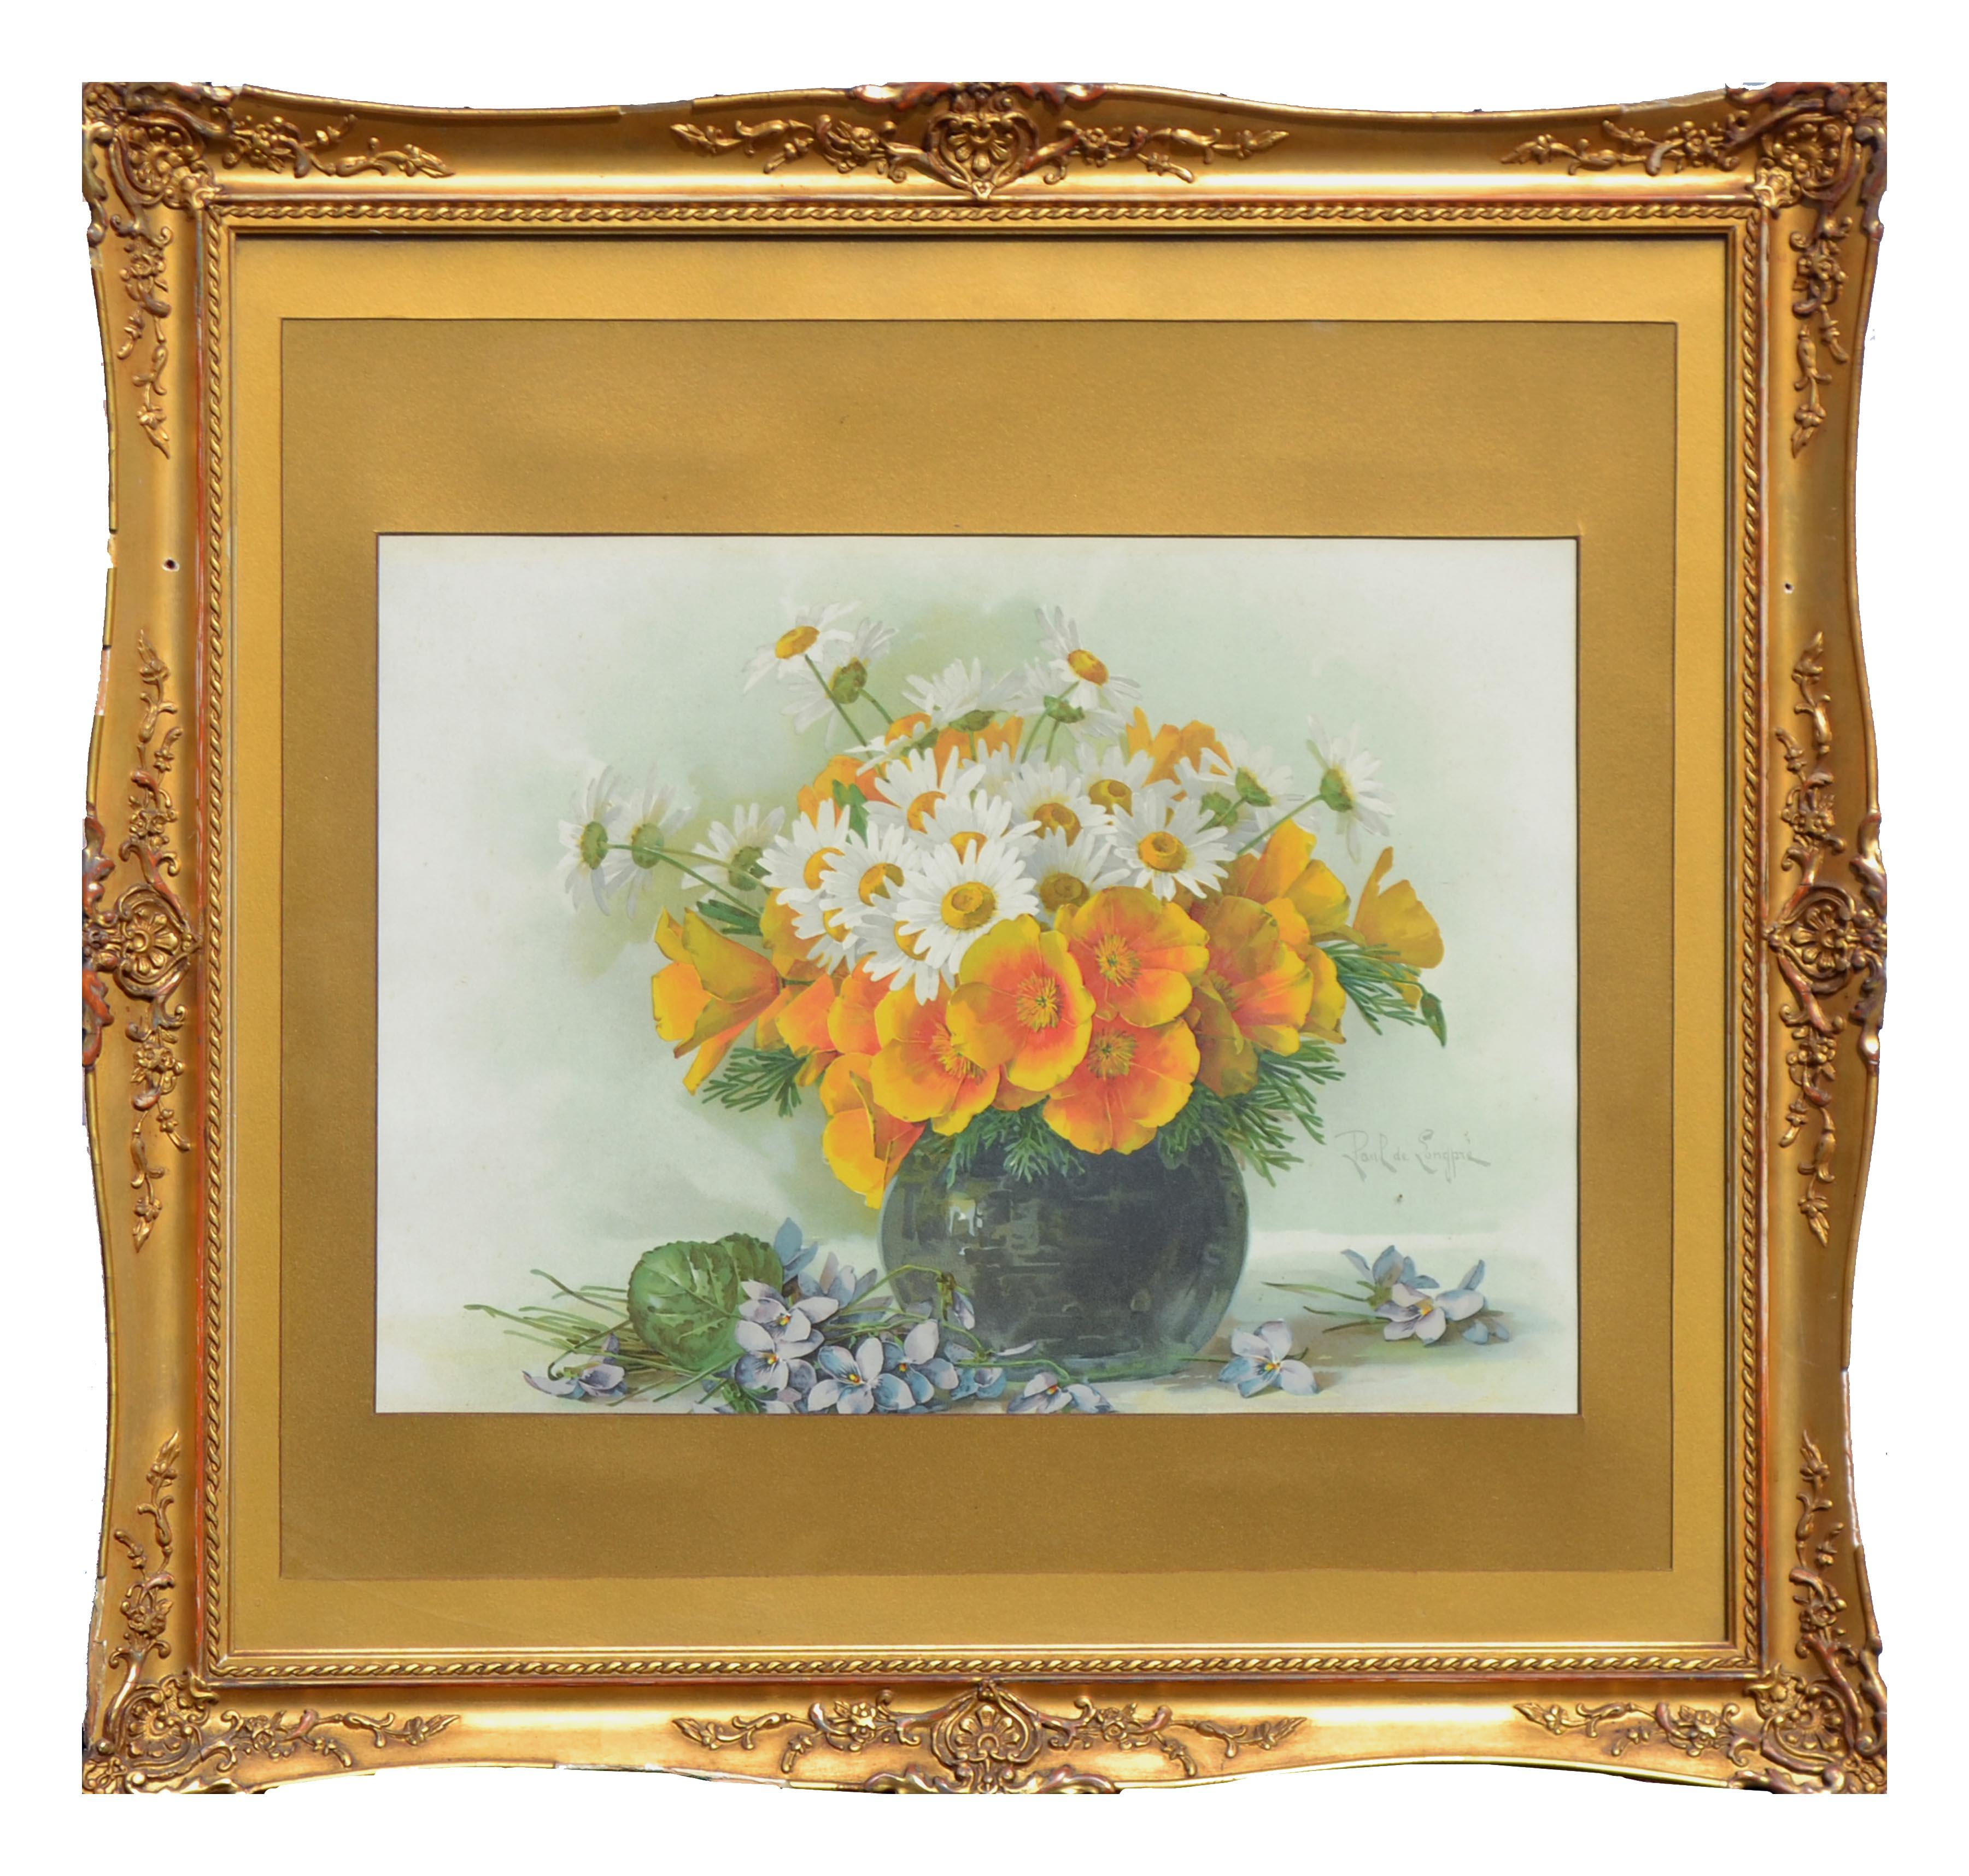 Late 19th Ccentury Chromolithograph of Daisies and California Poppies Still Life